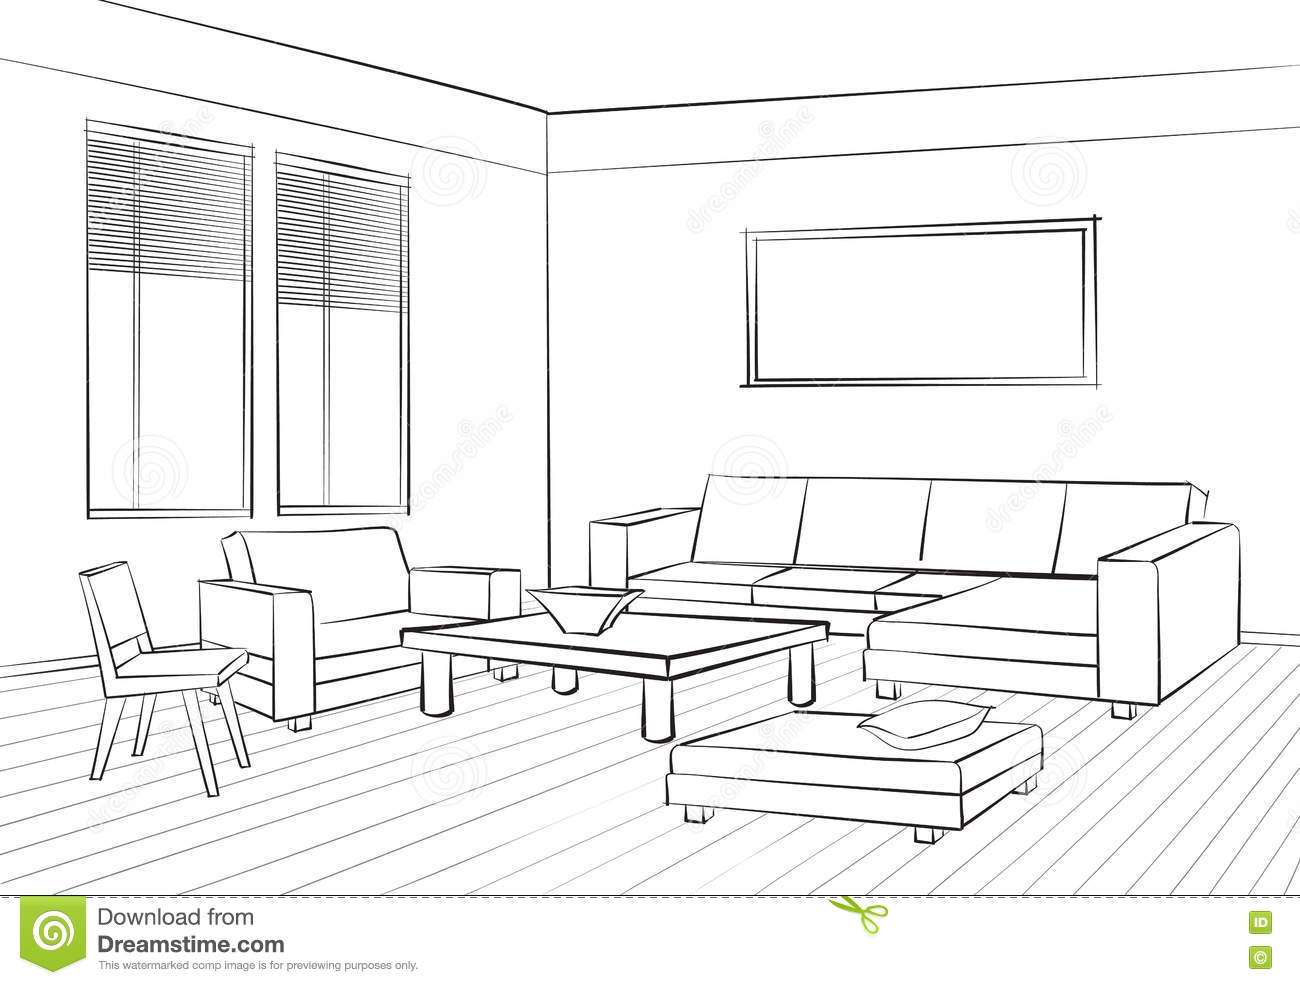 Living room design room interior sketch interior furniture conc stock illustration - In drowing room interiar design ...